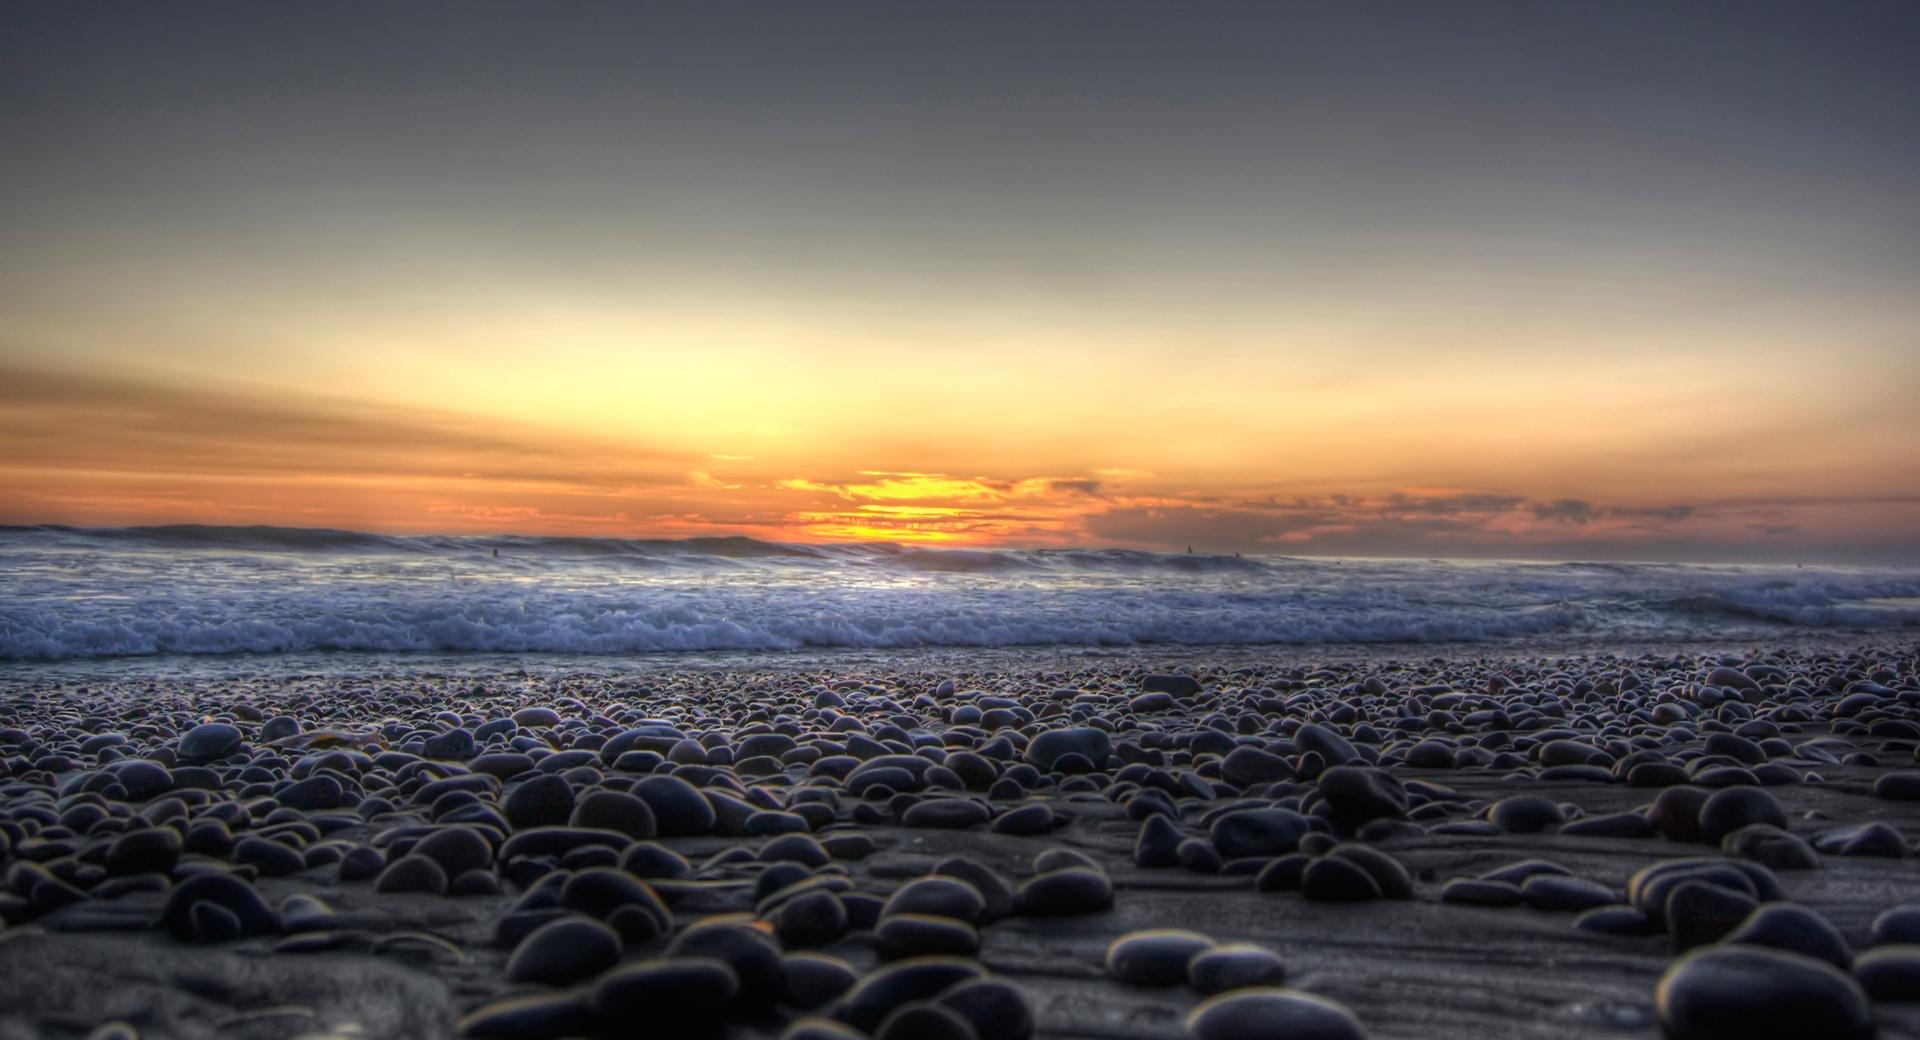 Stones On The Beach wallpapers HD quality